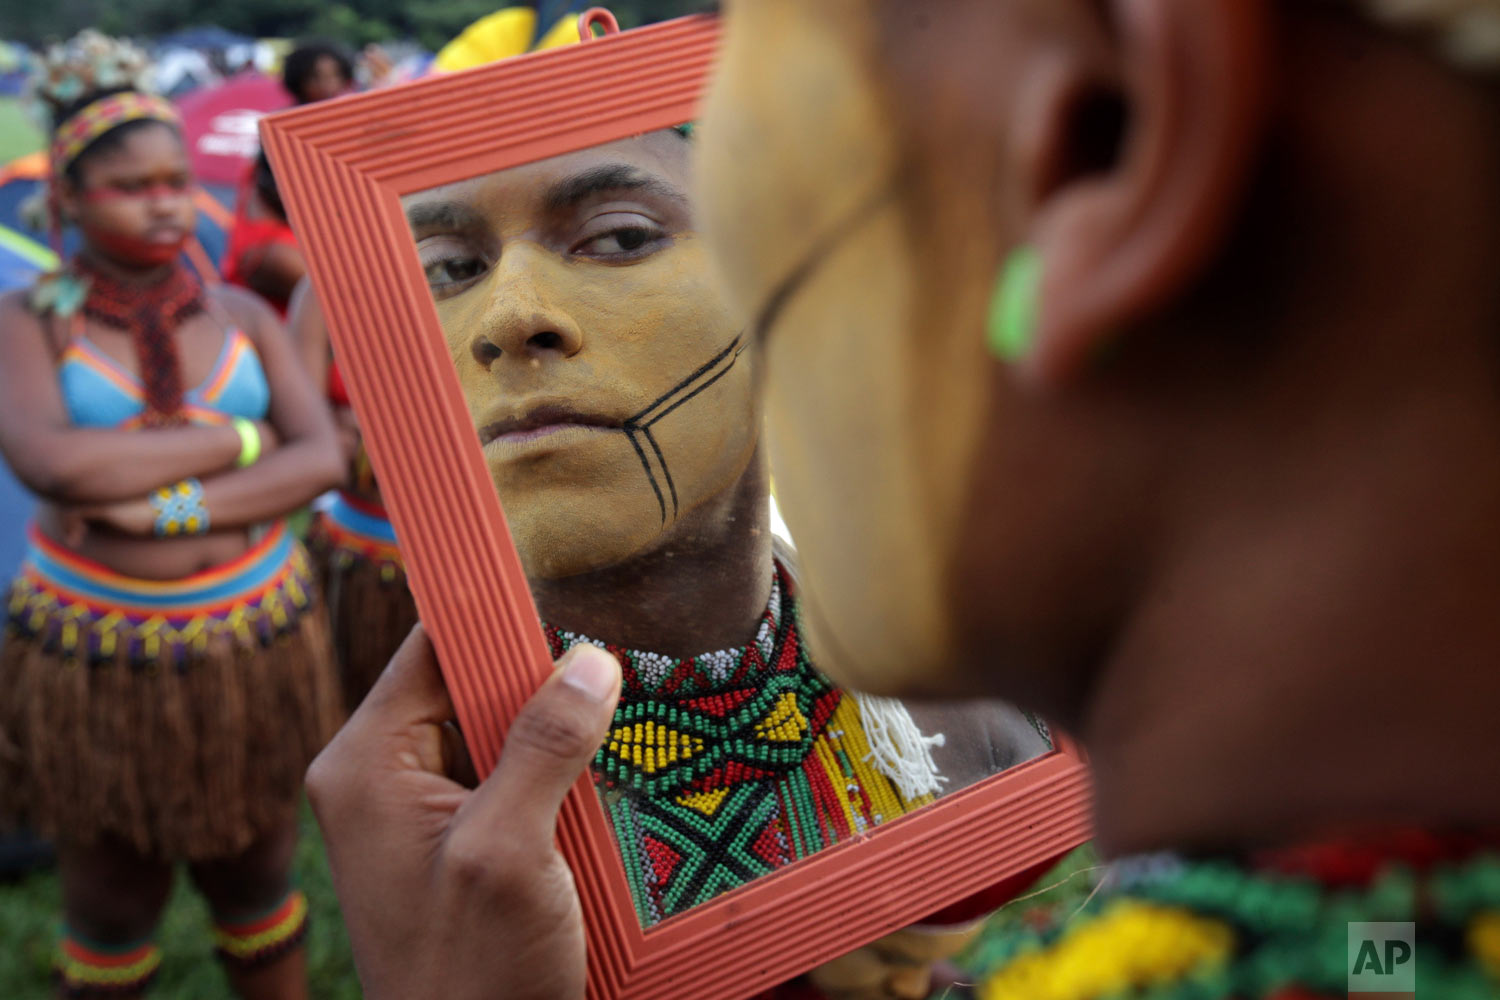 An indigenous man applies body paint during an annual campout protest for indigenous rights known as the Free Land Encampment in Brasilia, Brazil, April 24, 2019. (AP Photo/Eraldo Peres)